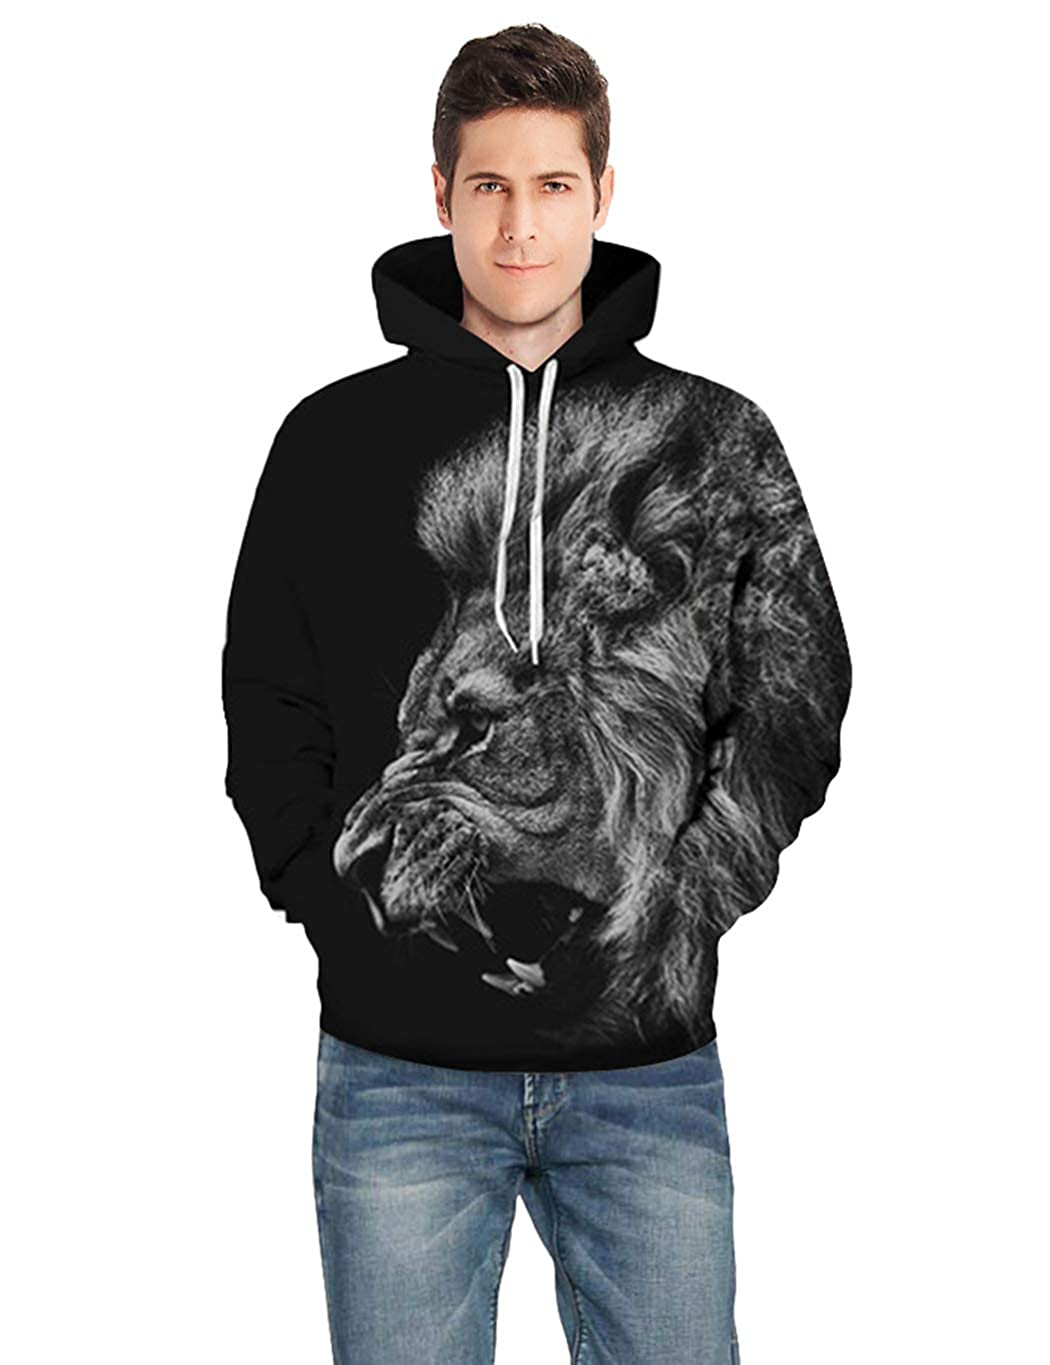 uideazone Unisex Novelty Hoodies 3D Graphic Print Sweatshirts Casual Pullovers with Pockets